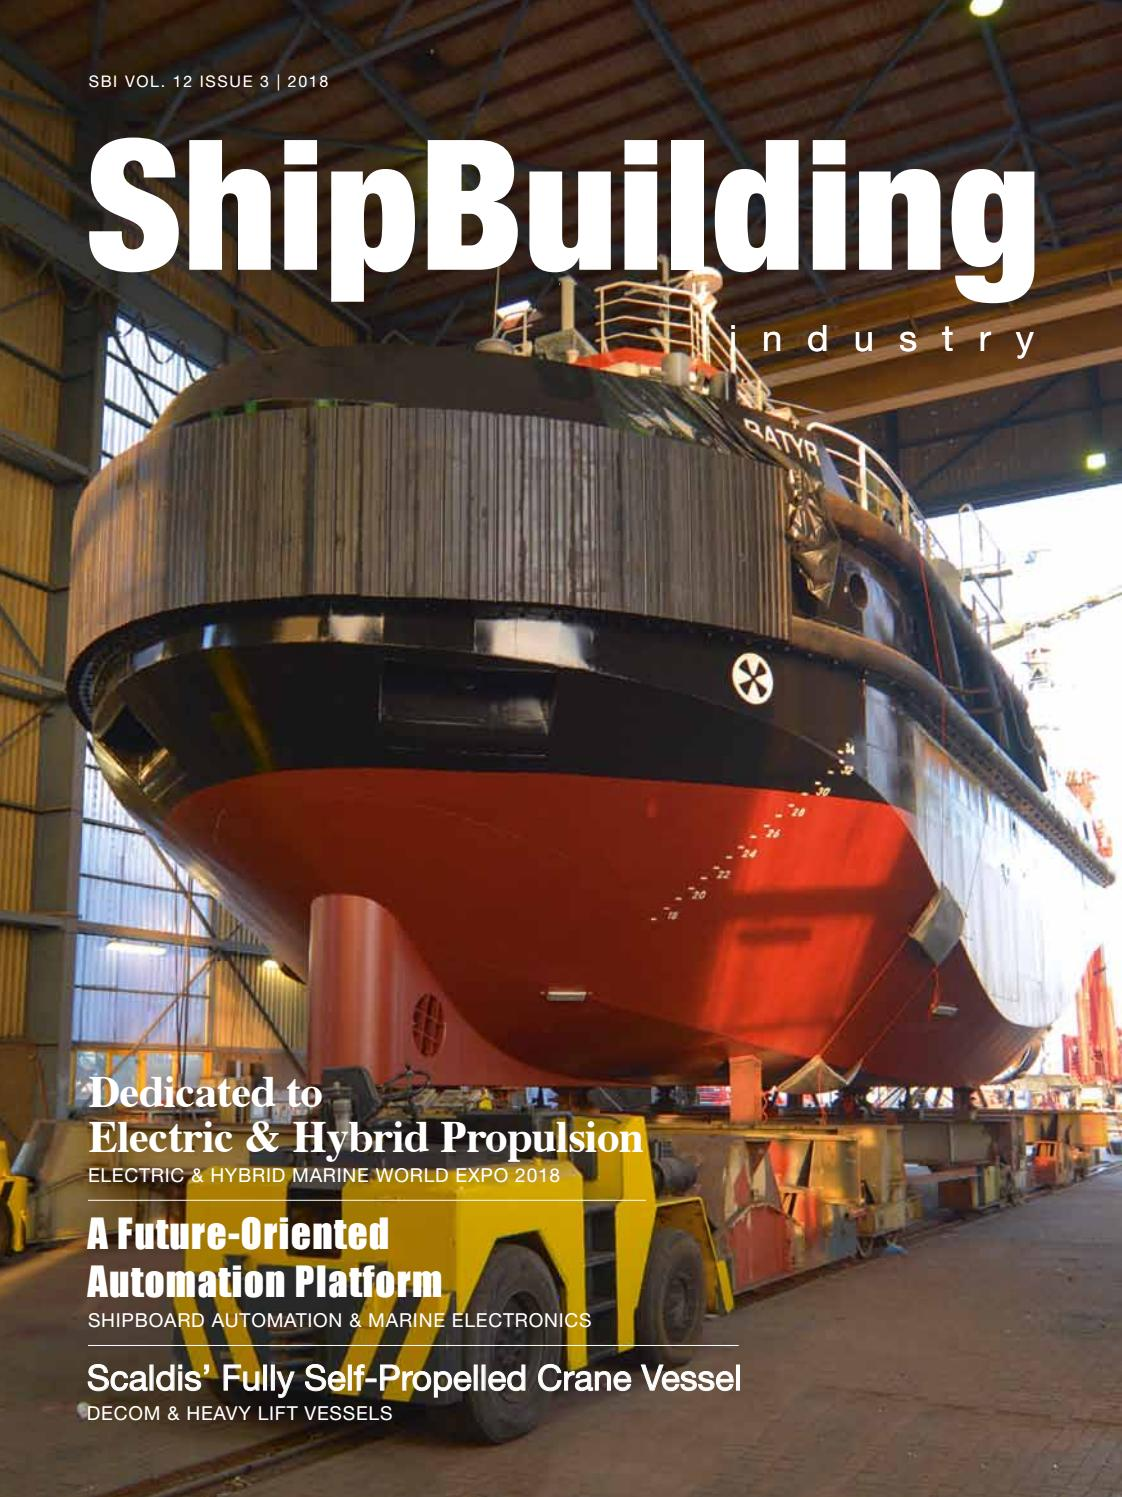 ShipBuilding Industry 2018 Issue 3 by Yellow & Finch